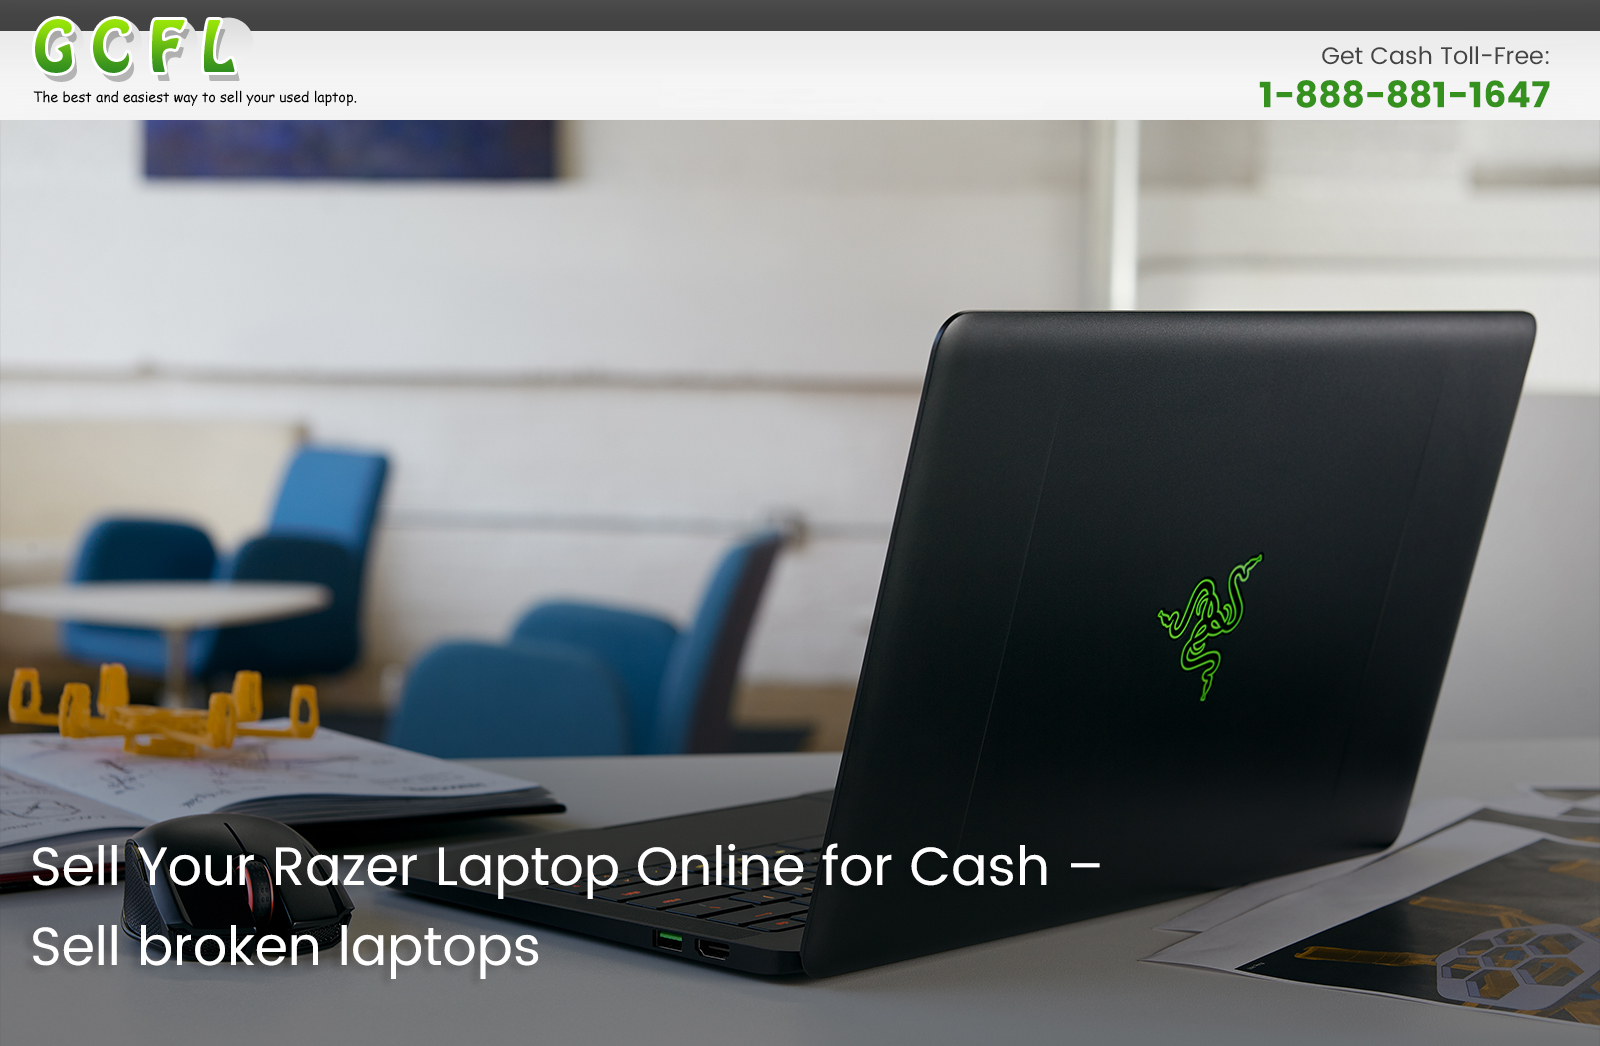 Sell Your Razer Laptop Online for Cash – Sell Broken Laptops